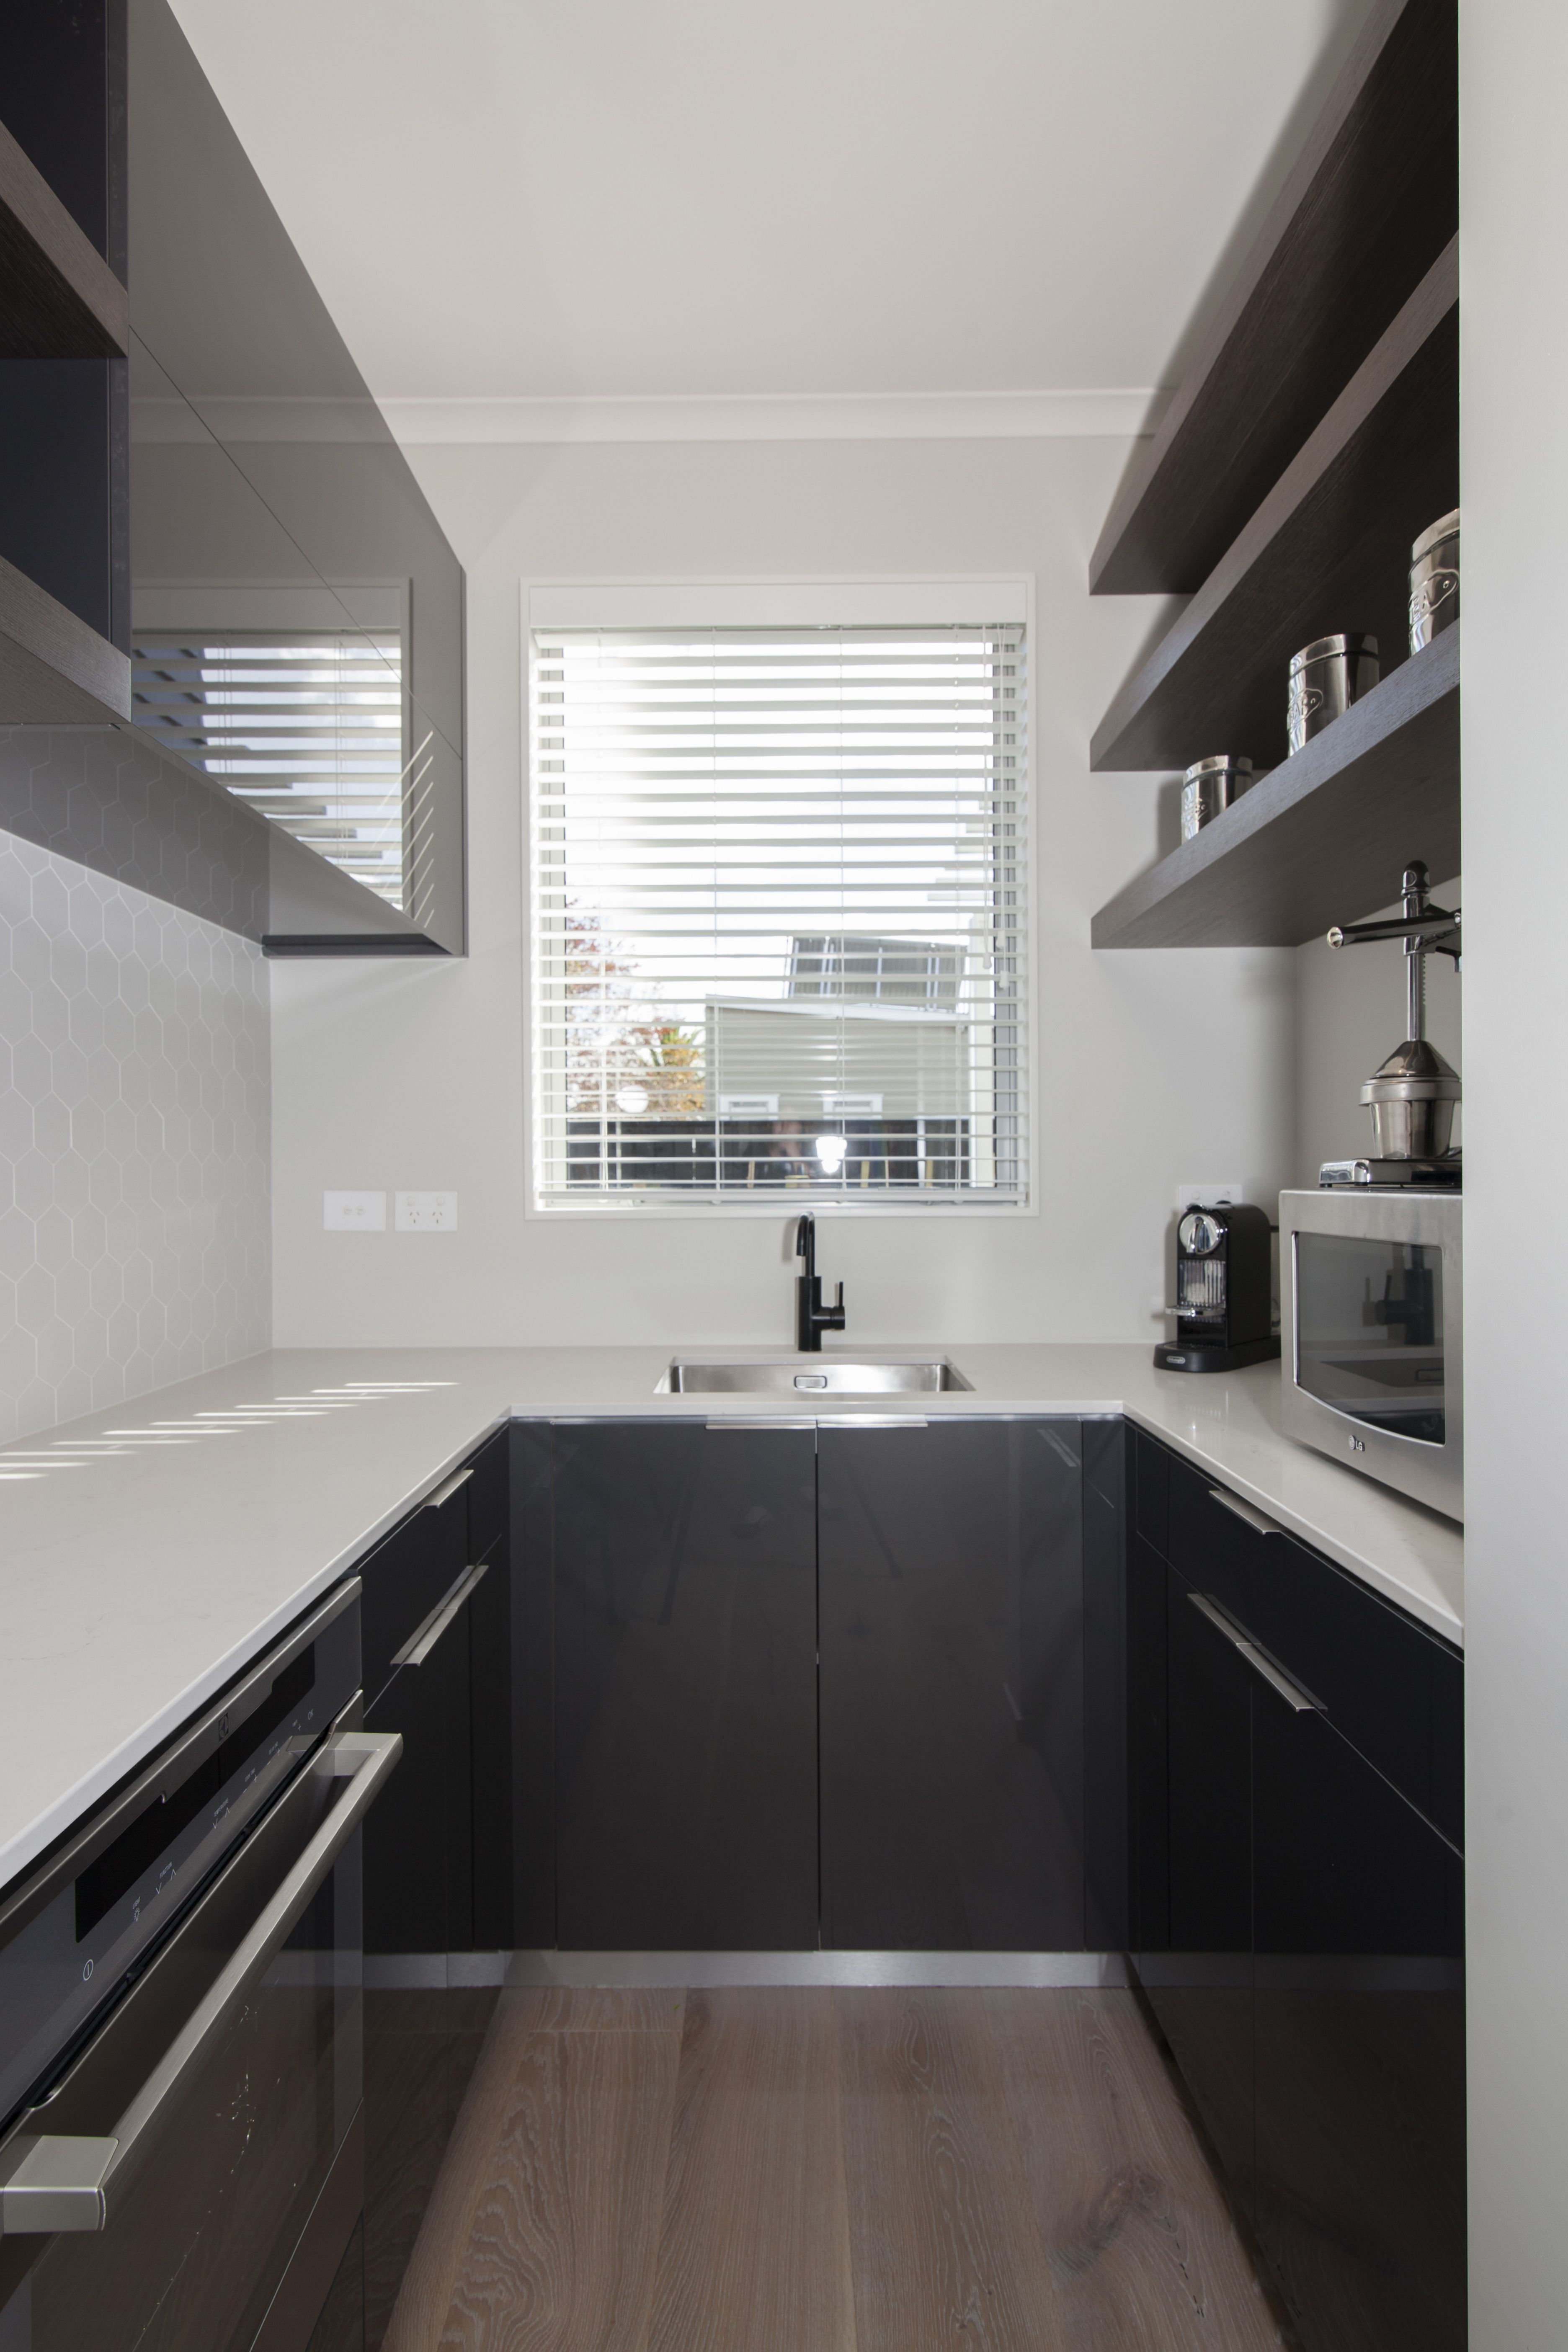 Dream scullery straight out of the new g j show home in auckland kitchen layout designkitchen